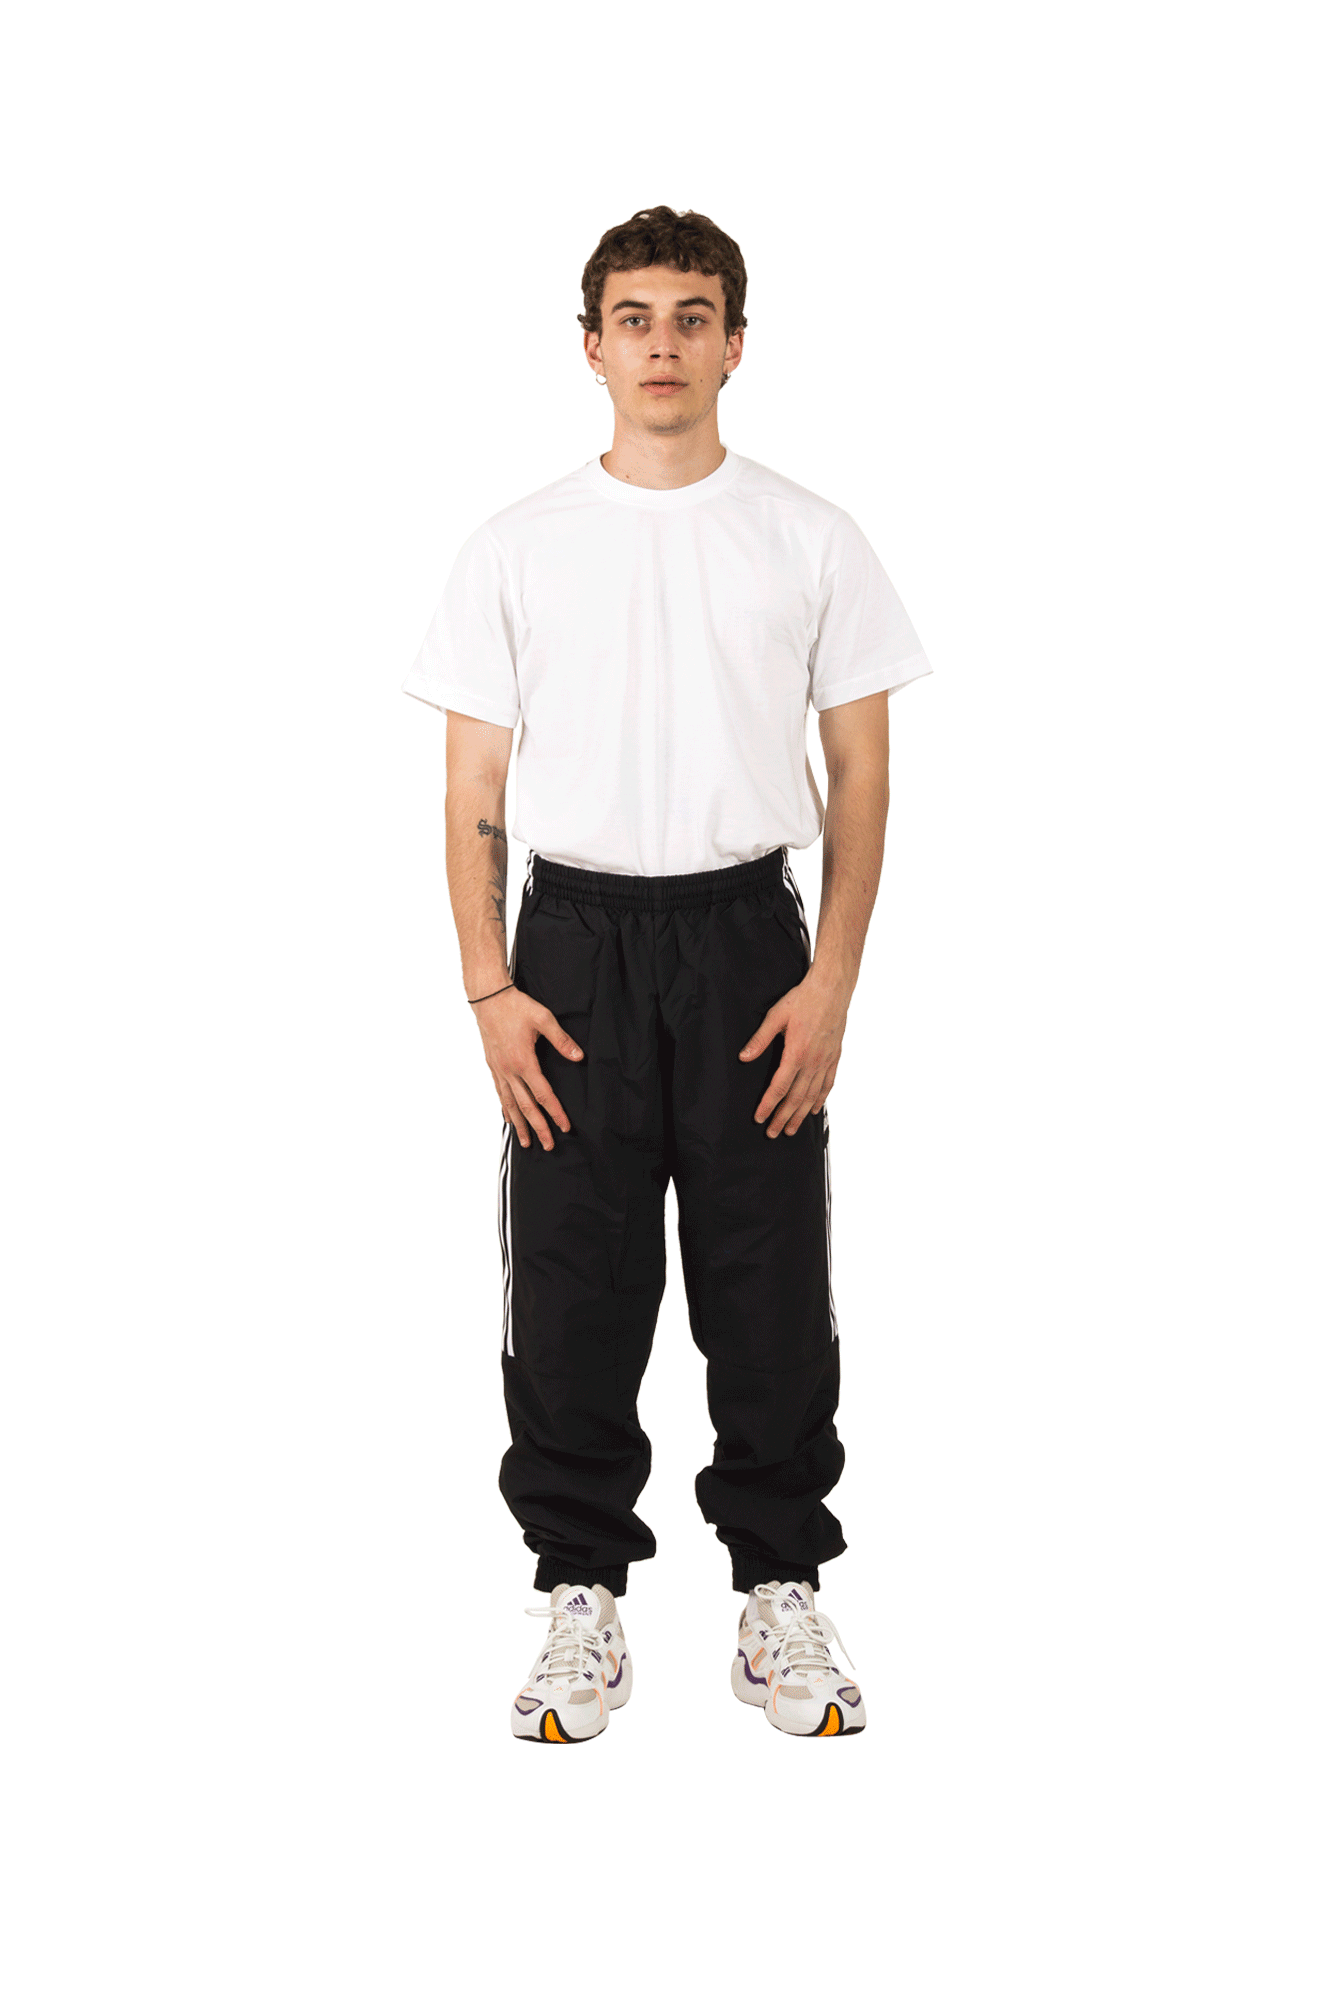 Adidas Originals Pantaloni sportivi Woven TP Pant Nero ED6097#000#Black#S - One Block Down